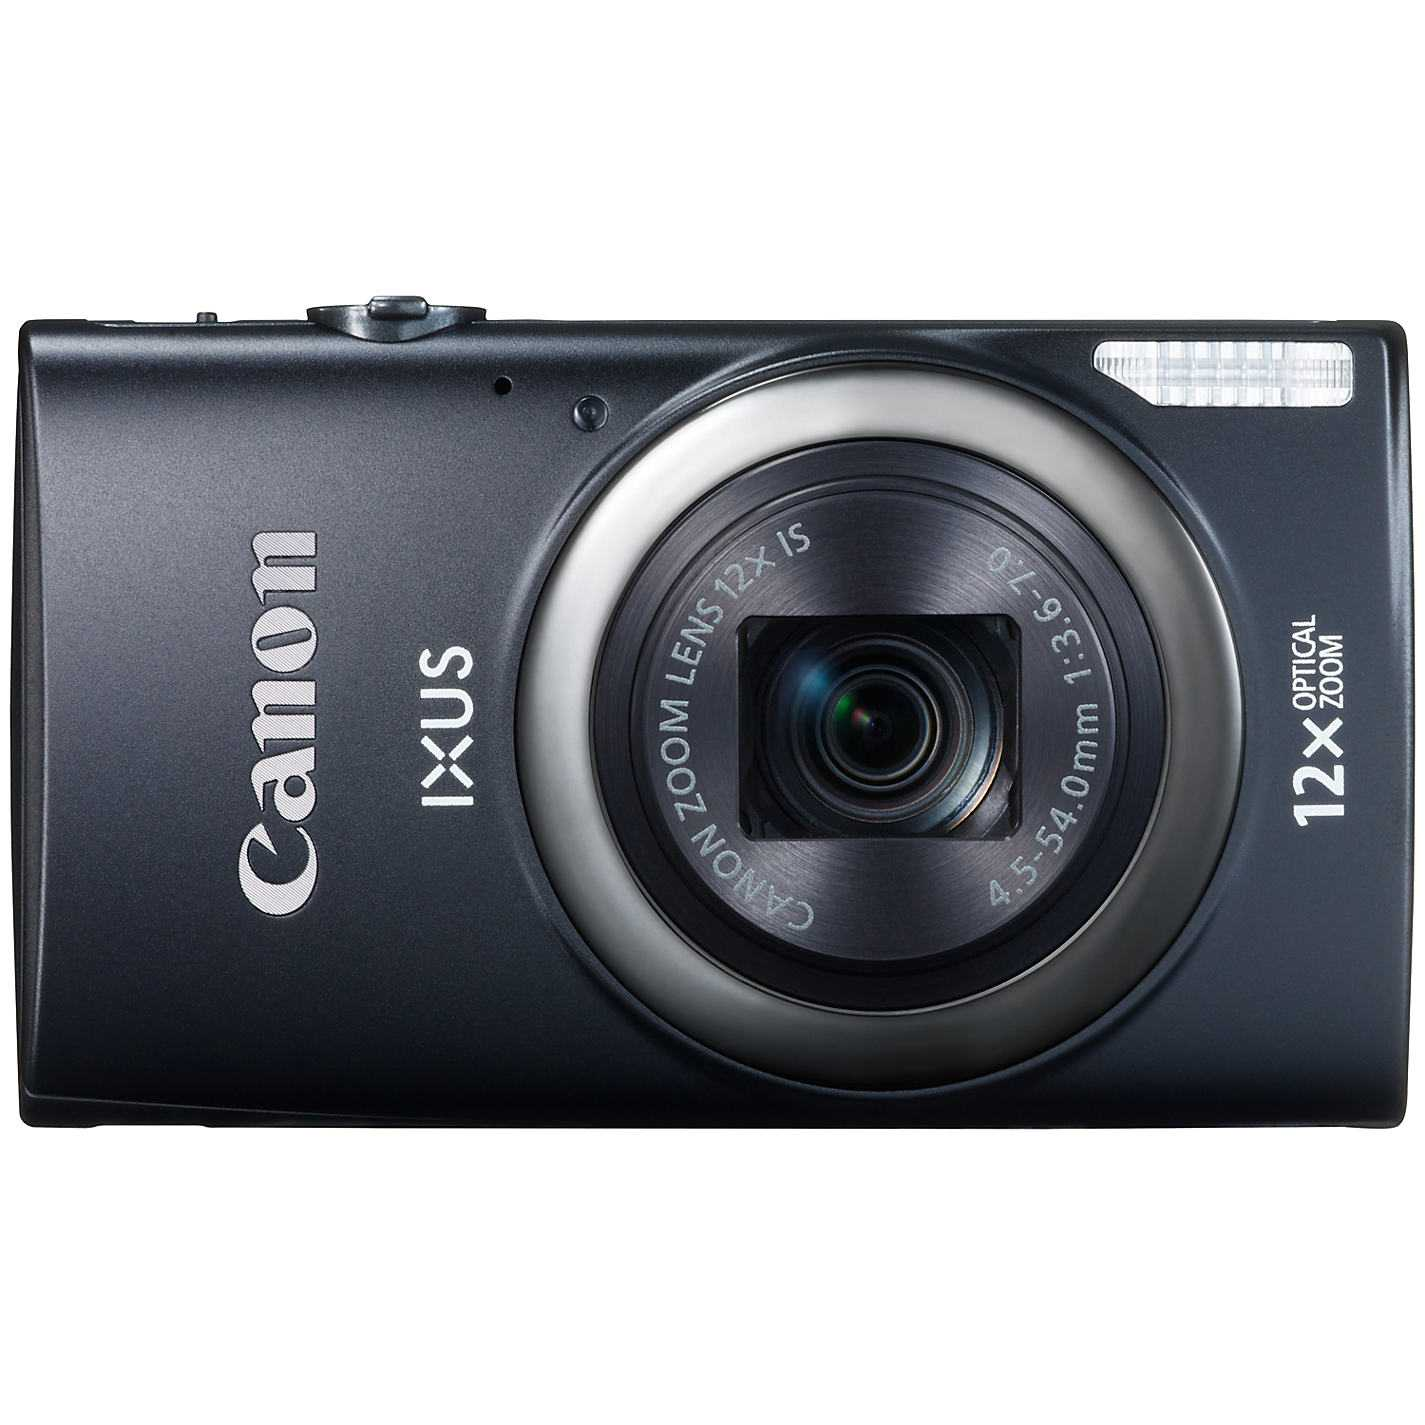 canon ixus 265 hs digital camera price in bangladesh ac mart bd. Black Bedroom Furniture Sets. Home Design Ideas